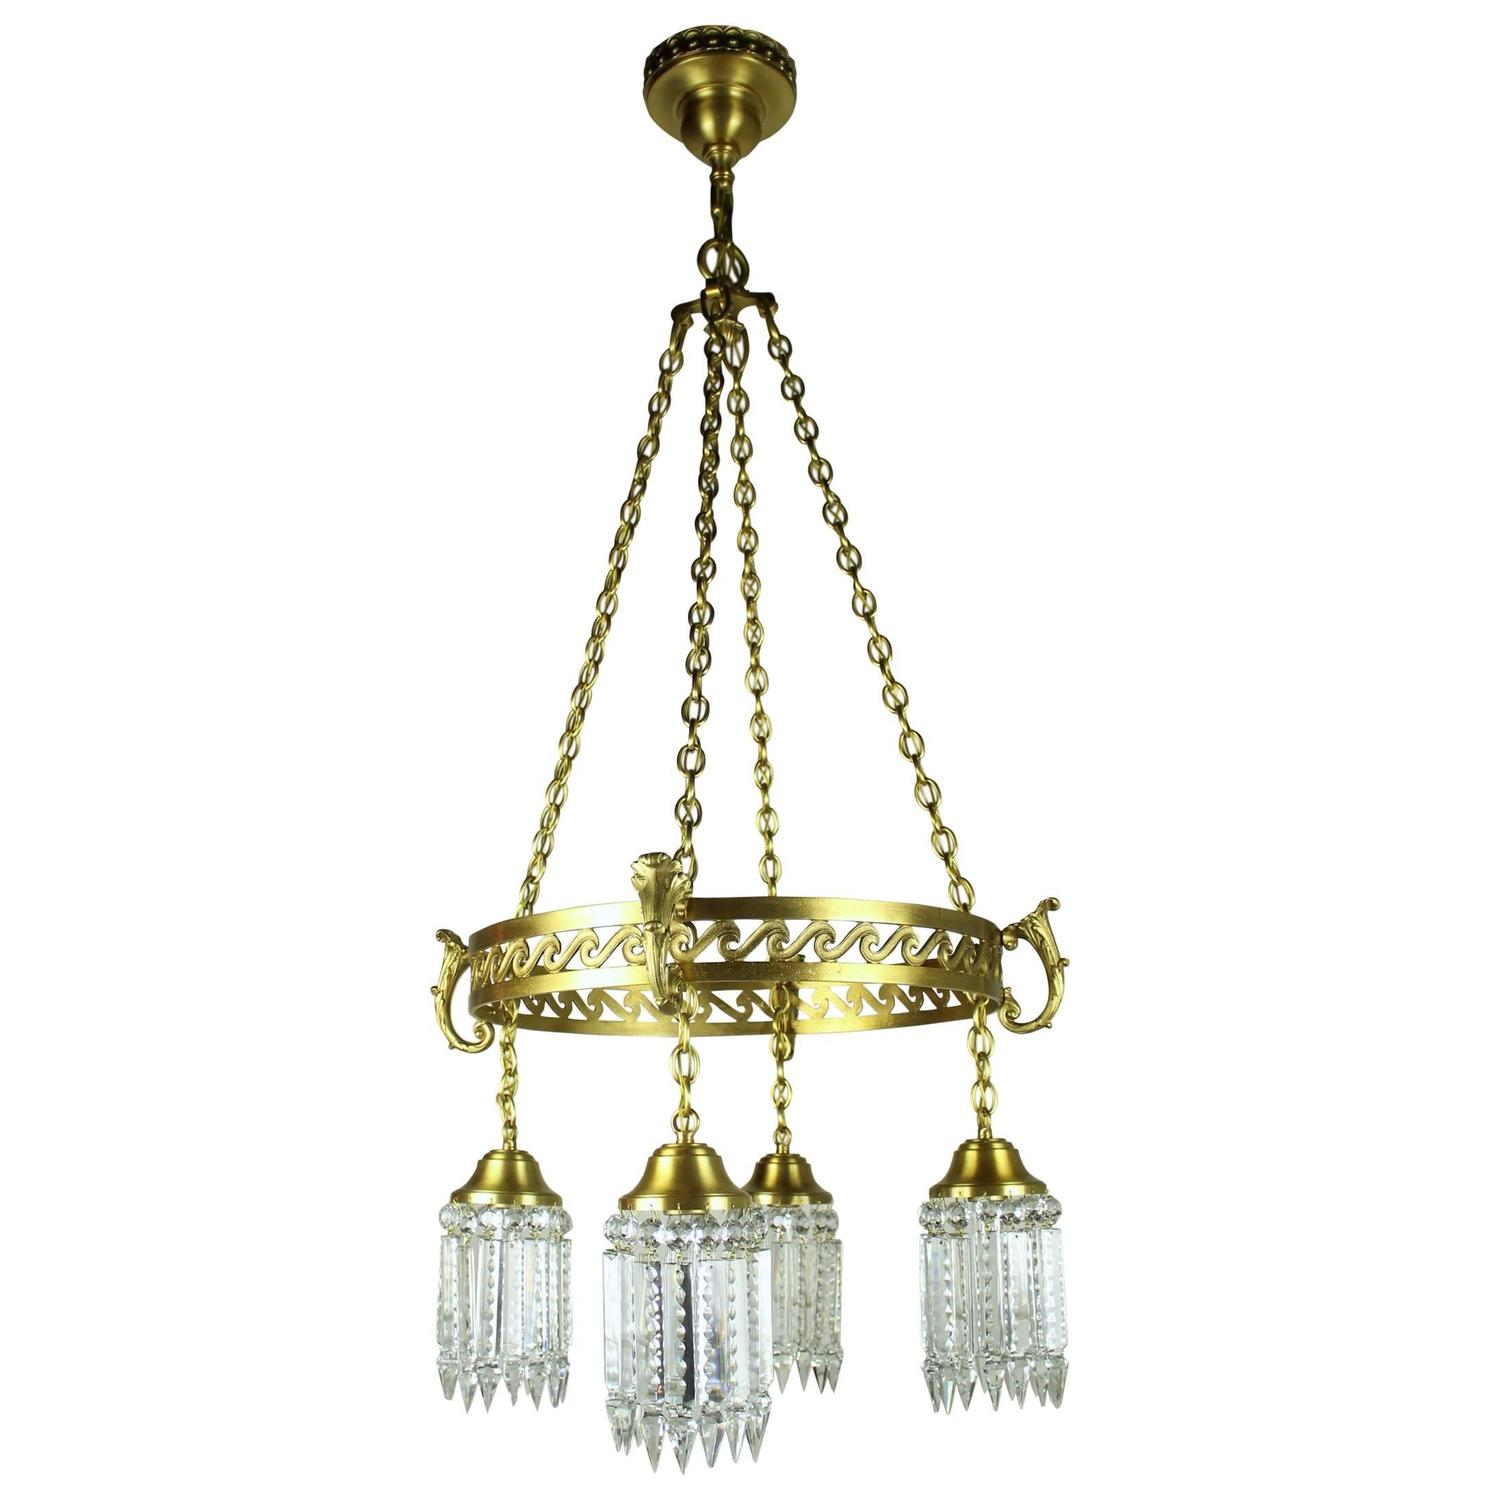 Chandelier Lighting Vancouver Bc: Neoclassical Brass Ring-Fixture With Notched Crystal For